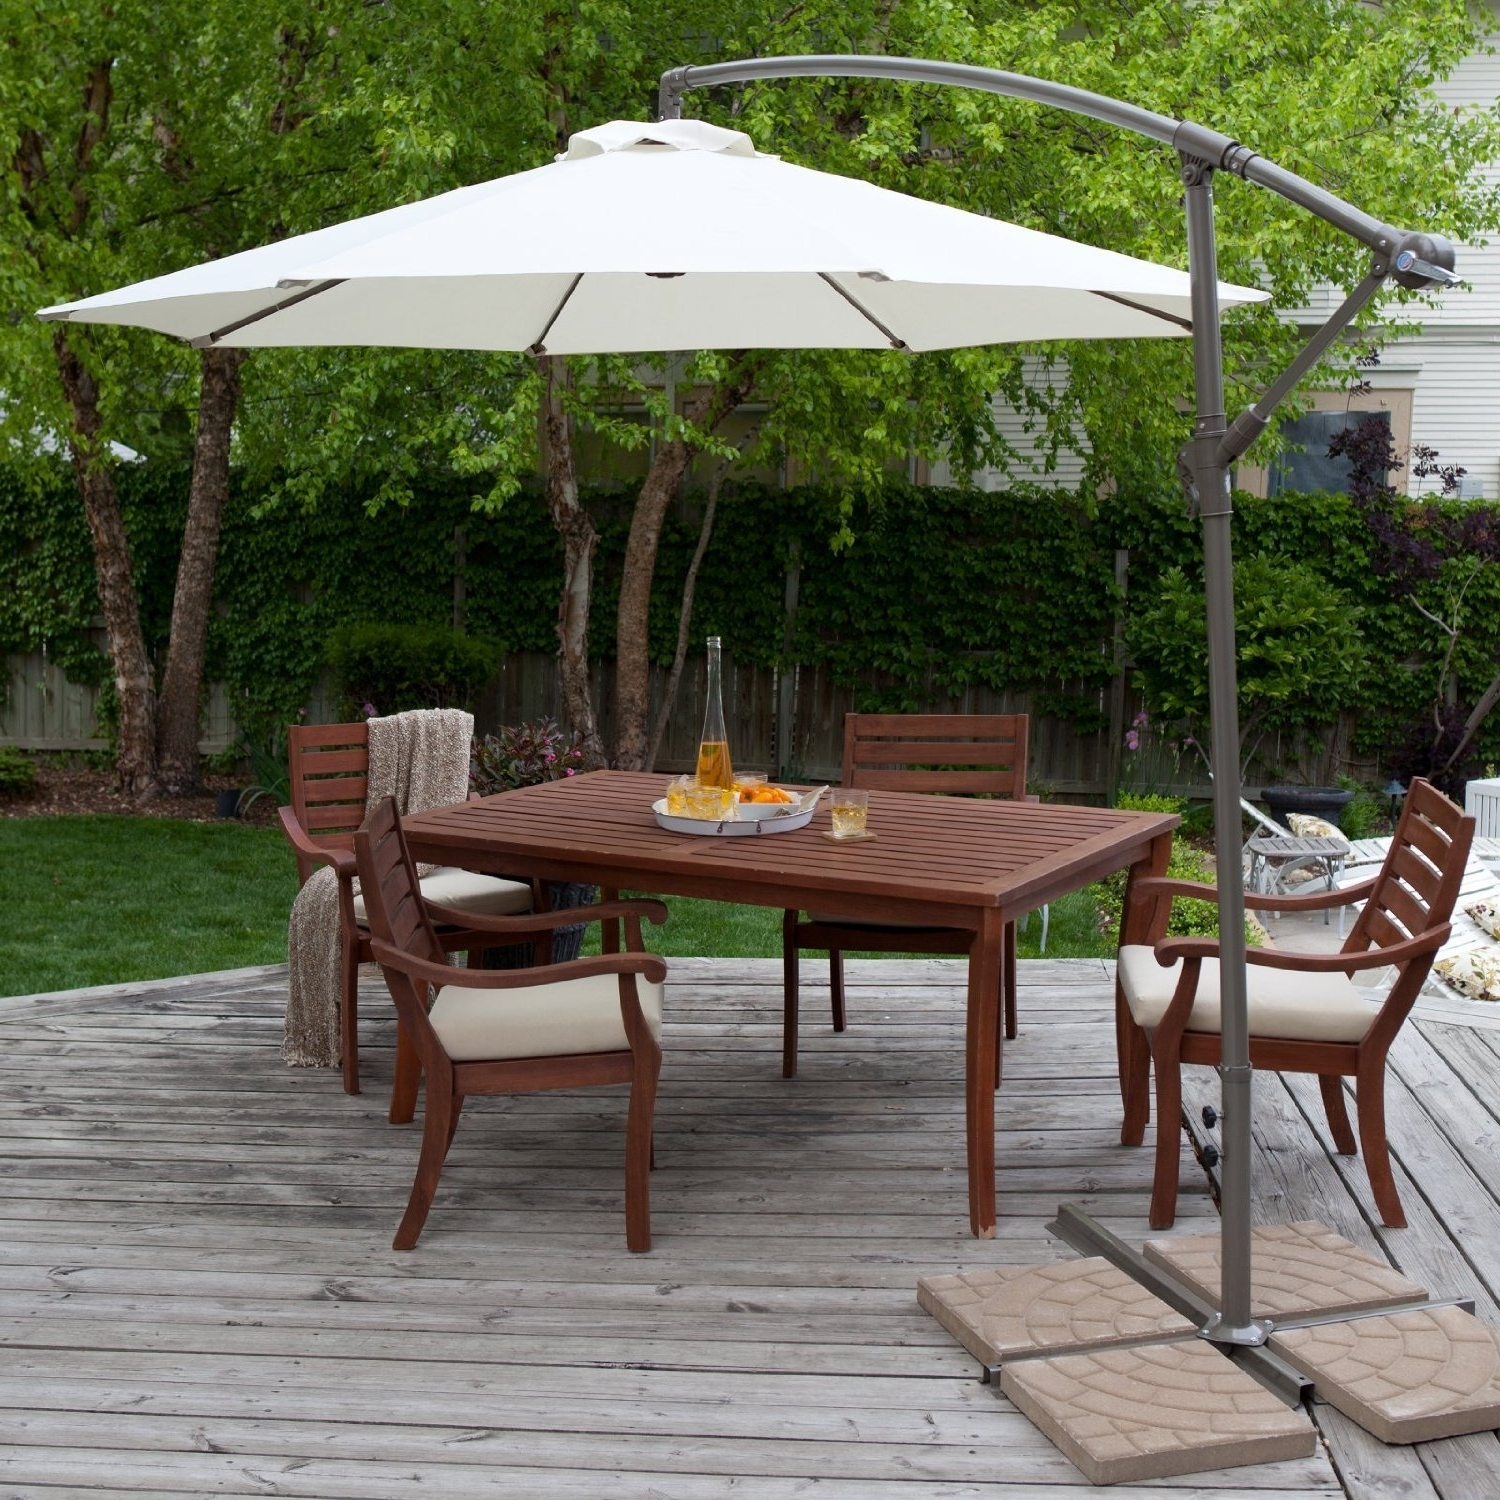 Patio Sets With Umbrellas For Well Known Interior : Patio Table Chairs Umbrella Set New Furniture Sets With (Gallery 12 of 20)